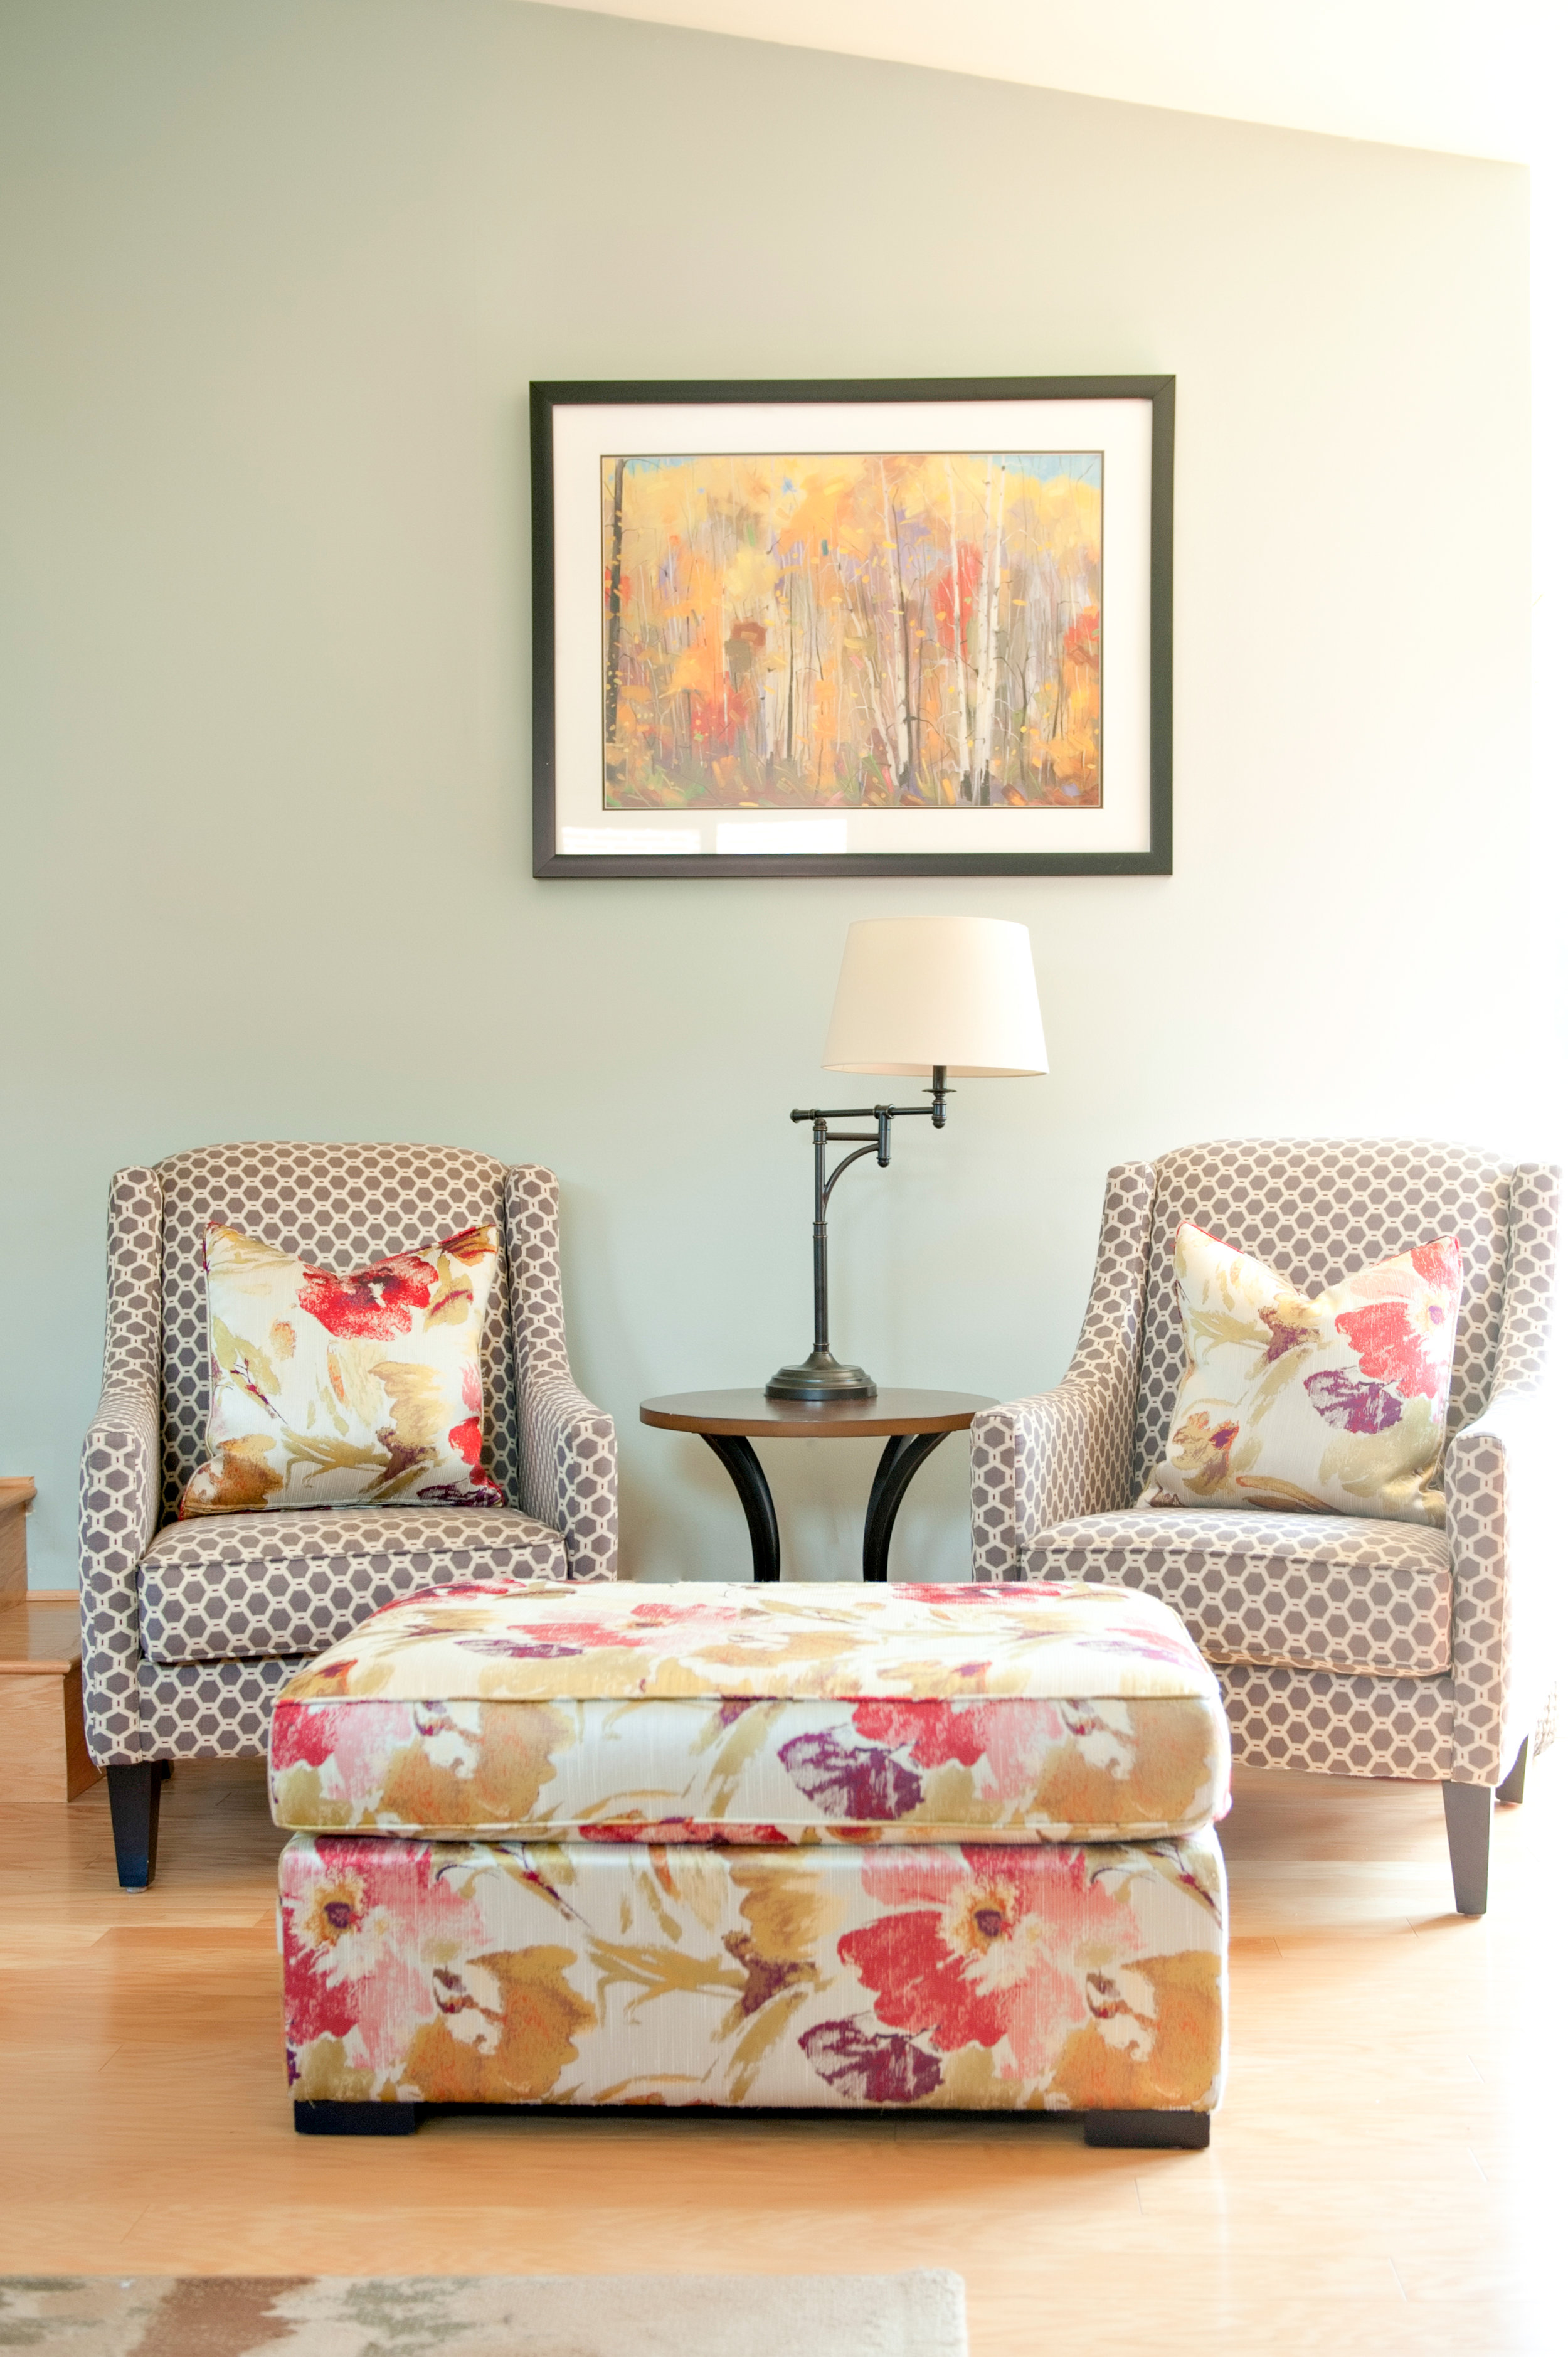 Interior-Design-Custom-Chairs-Red-Floral-Poppies